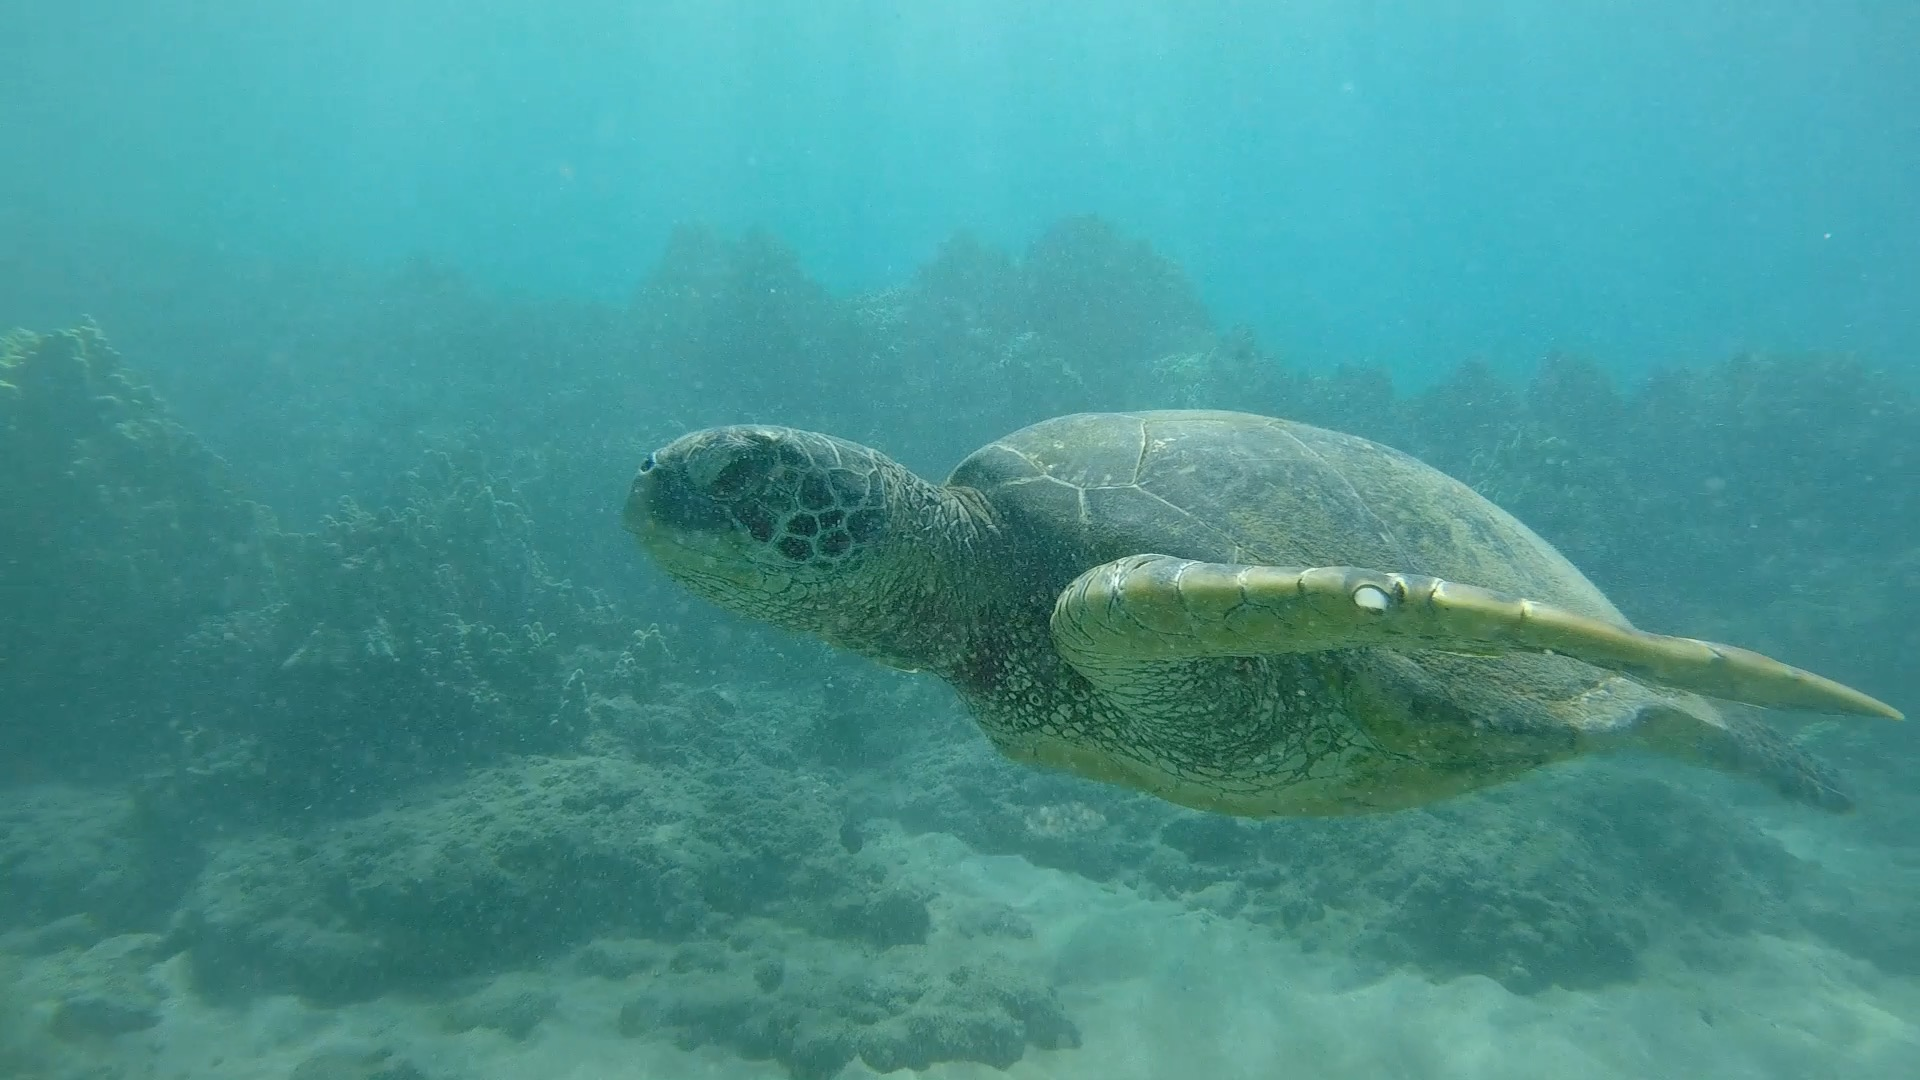 Scuba diving with sea turtles in Maui, Hawaii.